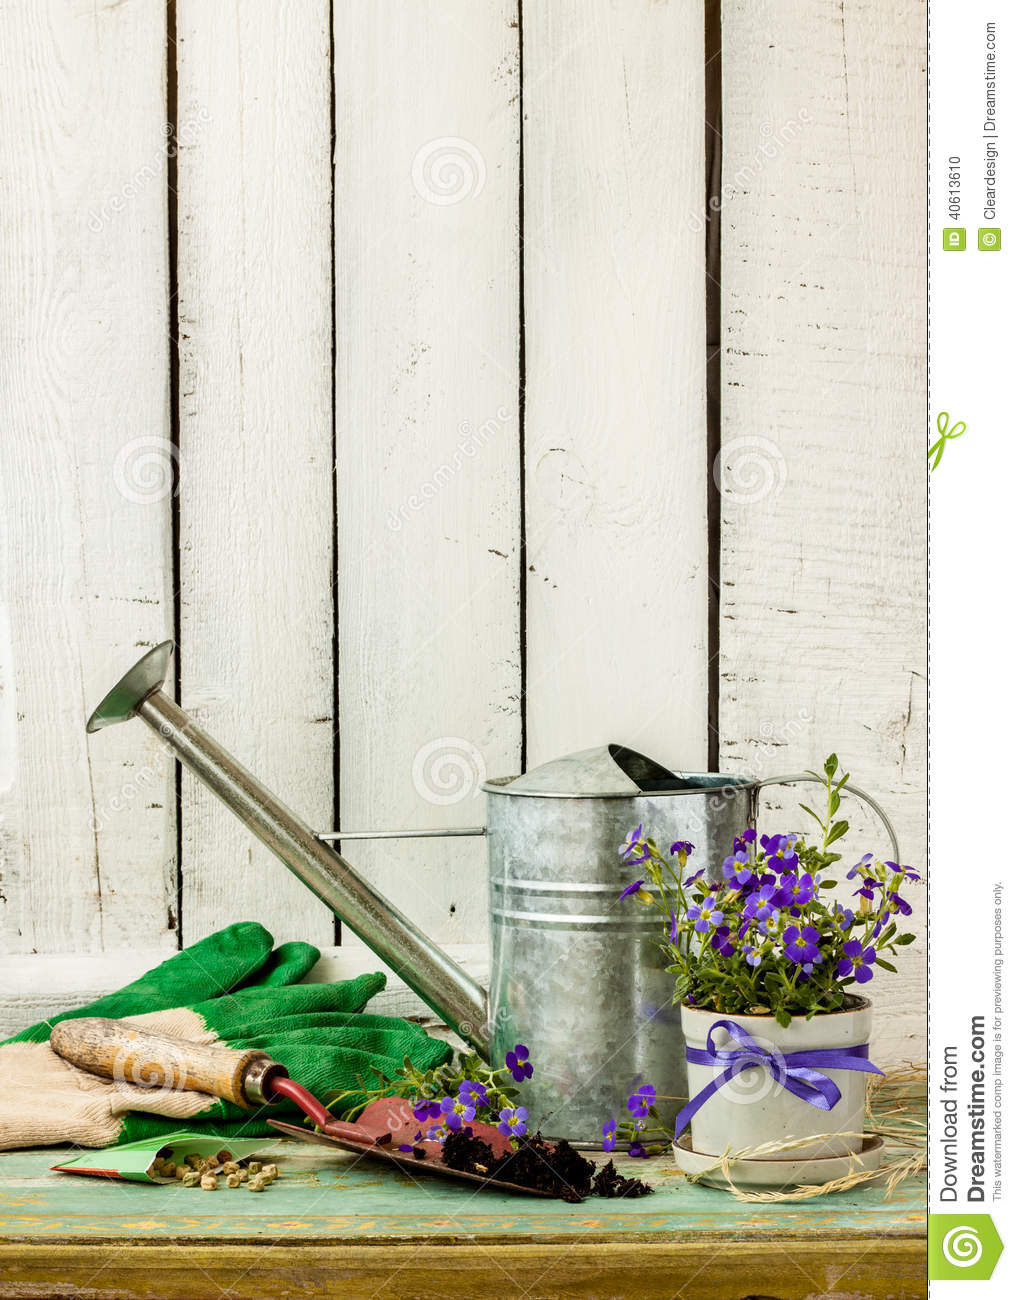 Gardening tools on white wood background - spring